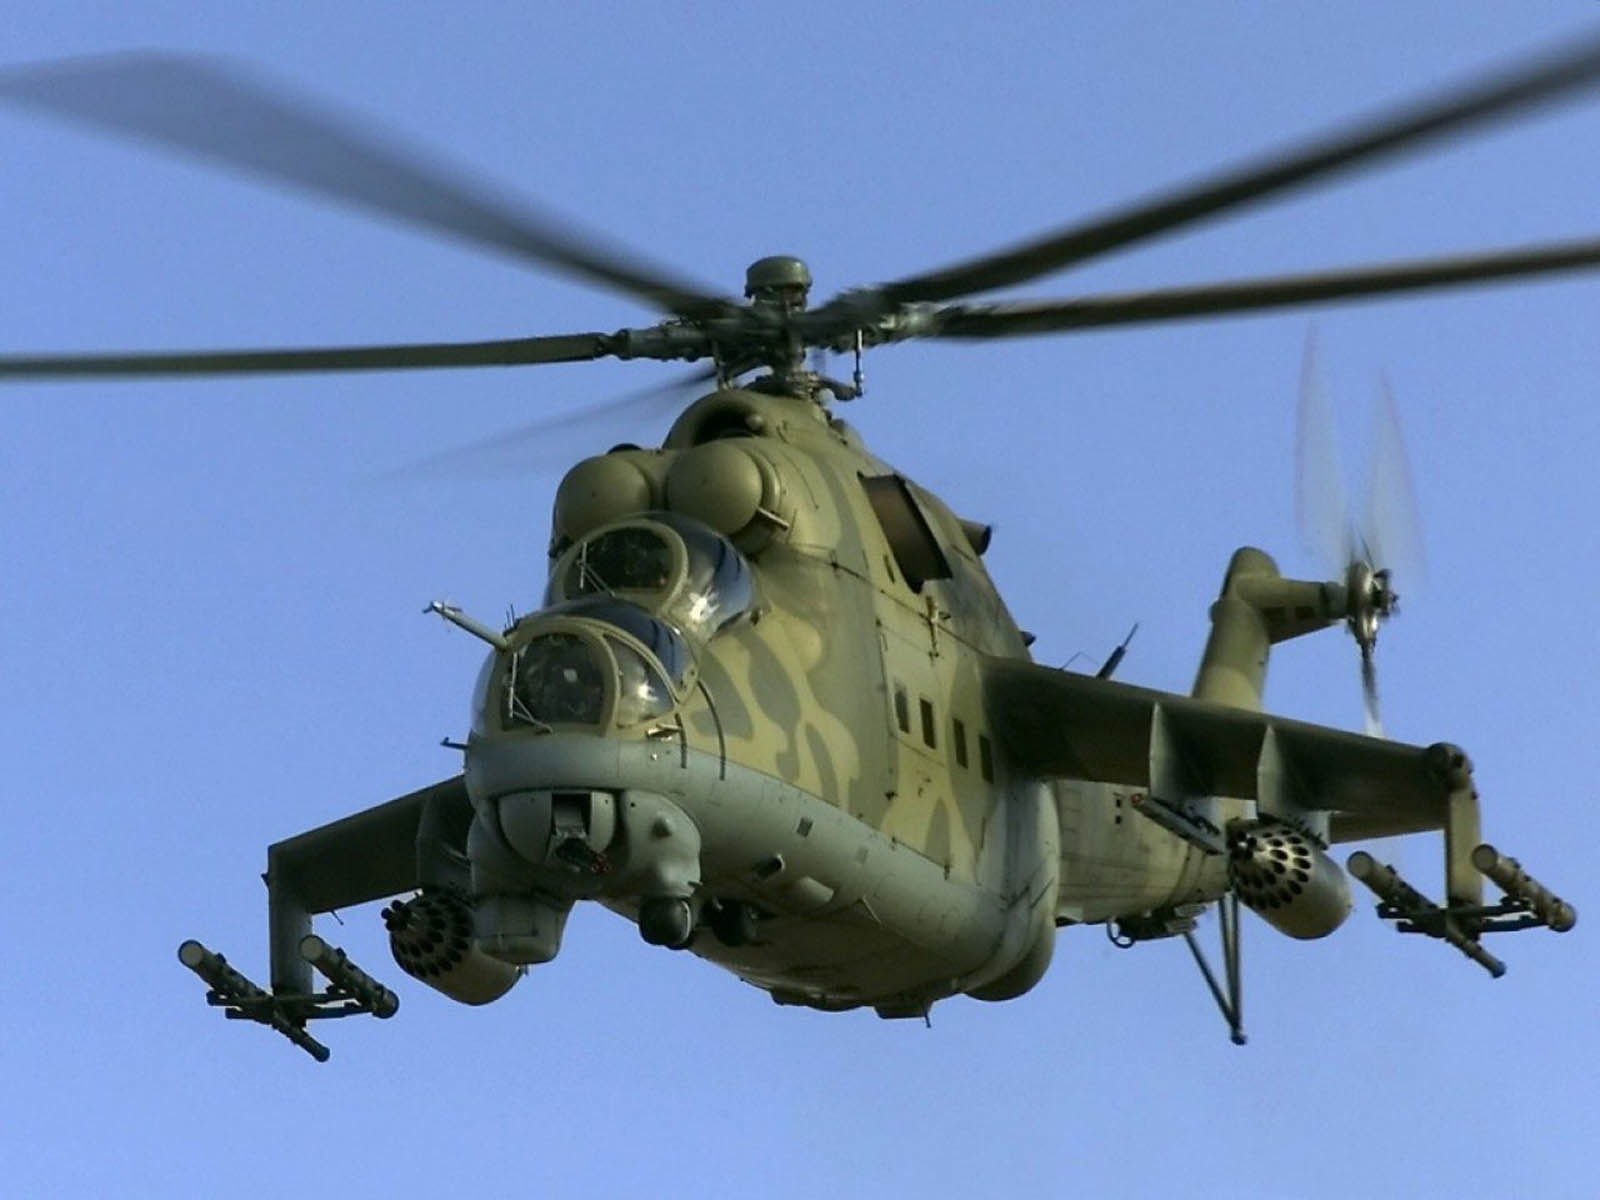 helicopter wallpapers mi 24 hind helicopter desktop wallpapers mi 24 1600x1200